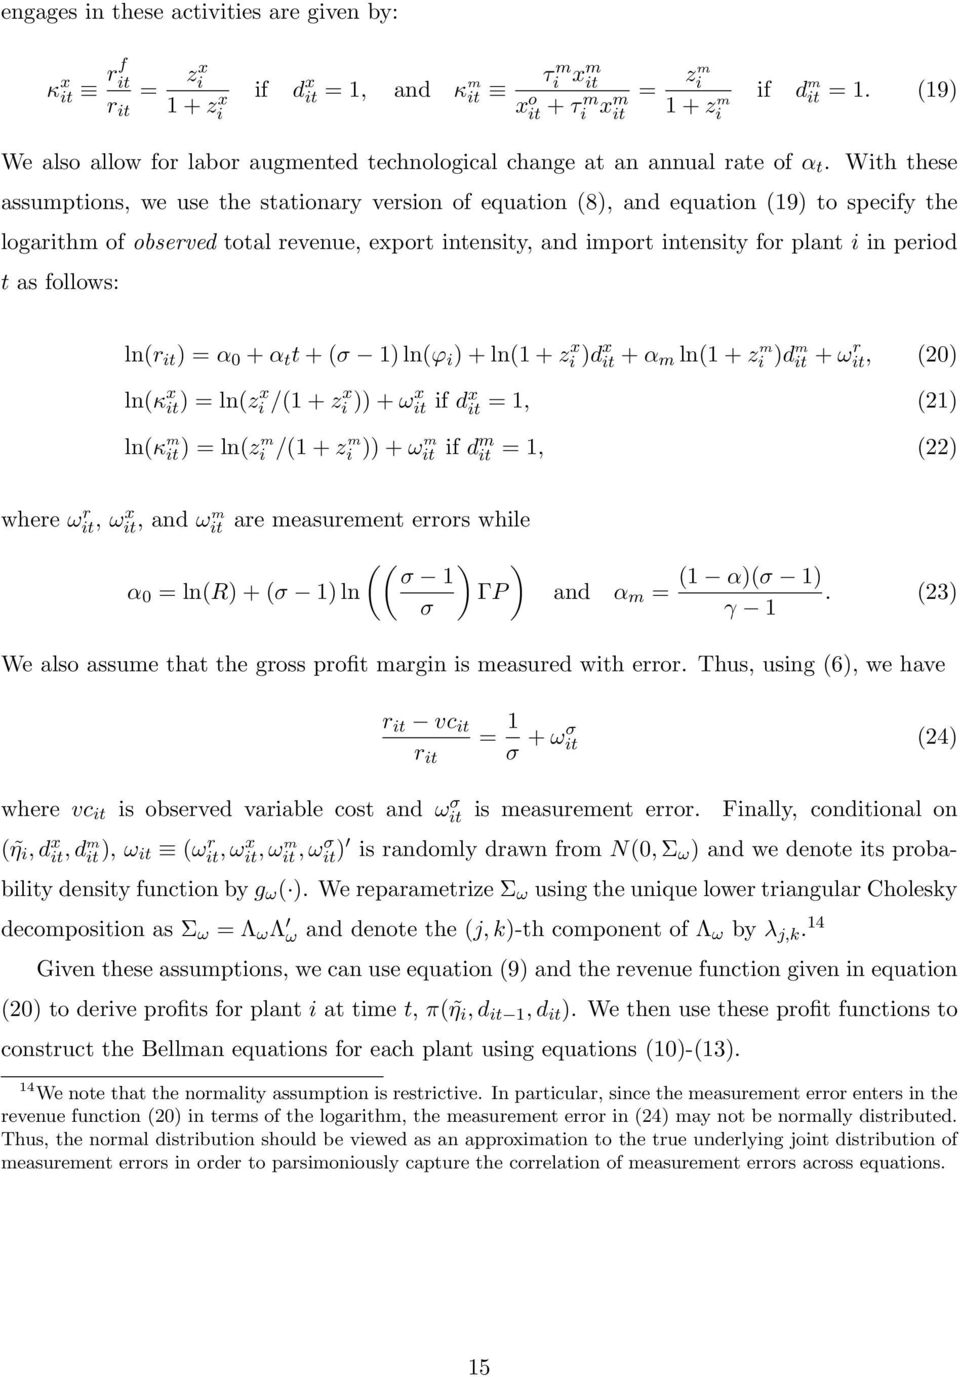 With these assumptions, we use the stationary version of equation (8), and equation (19) to specify the logarithm of observed total revenue, export intensity, and import intensity for plant i in